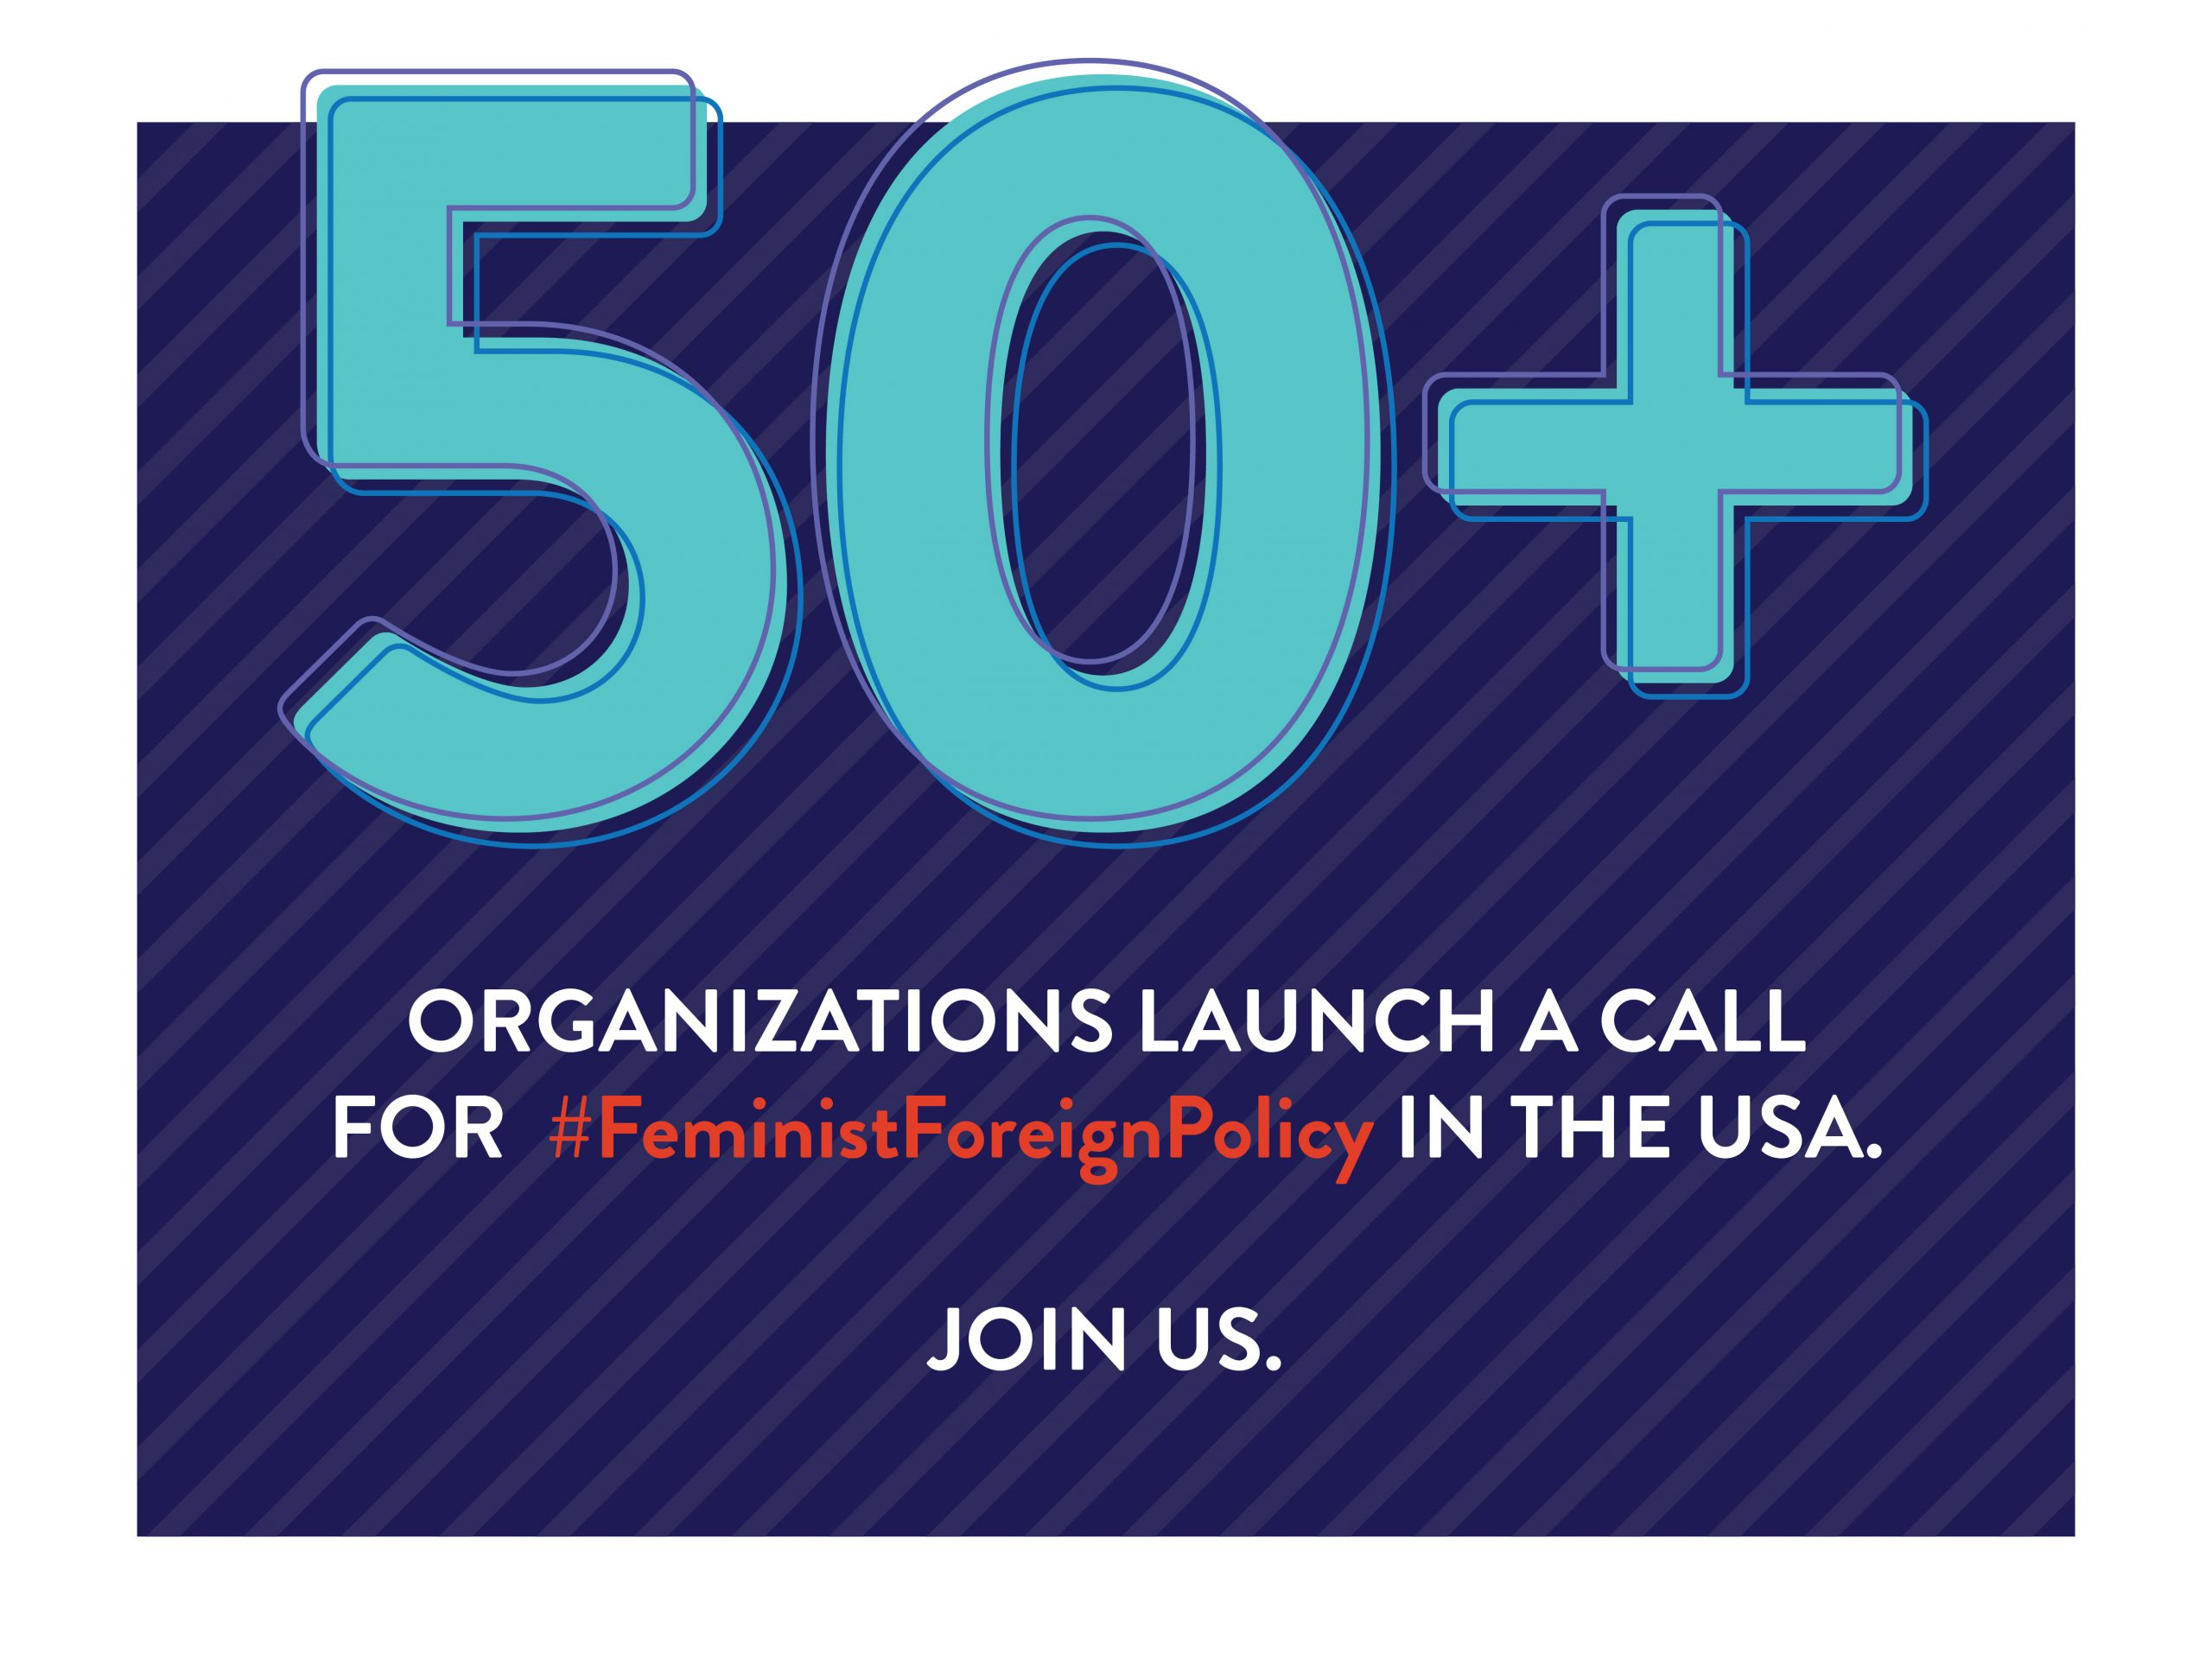 Call for a #Feminist Foreign Policy in the US.